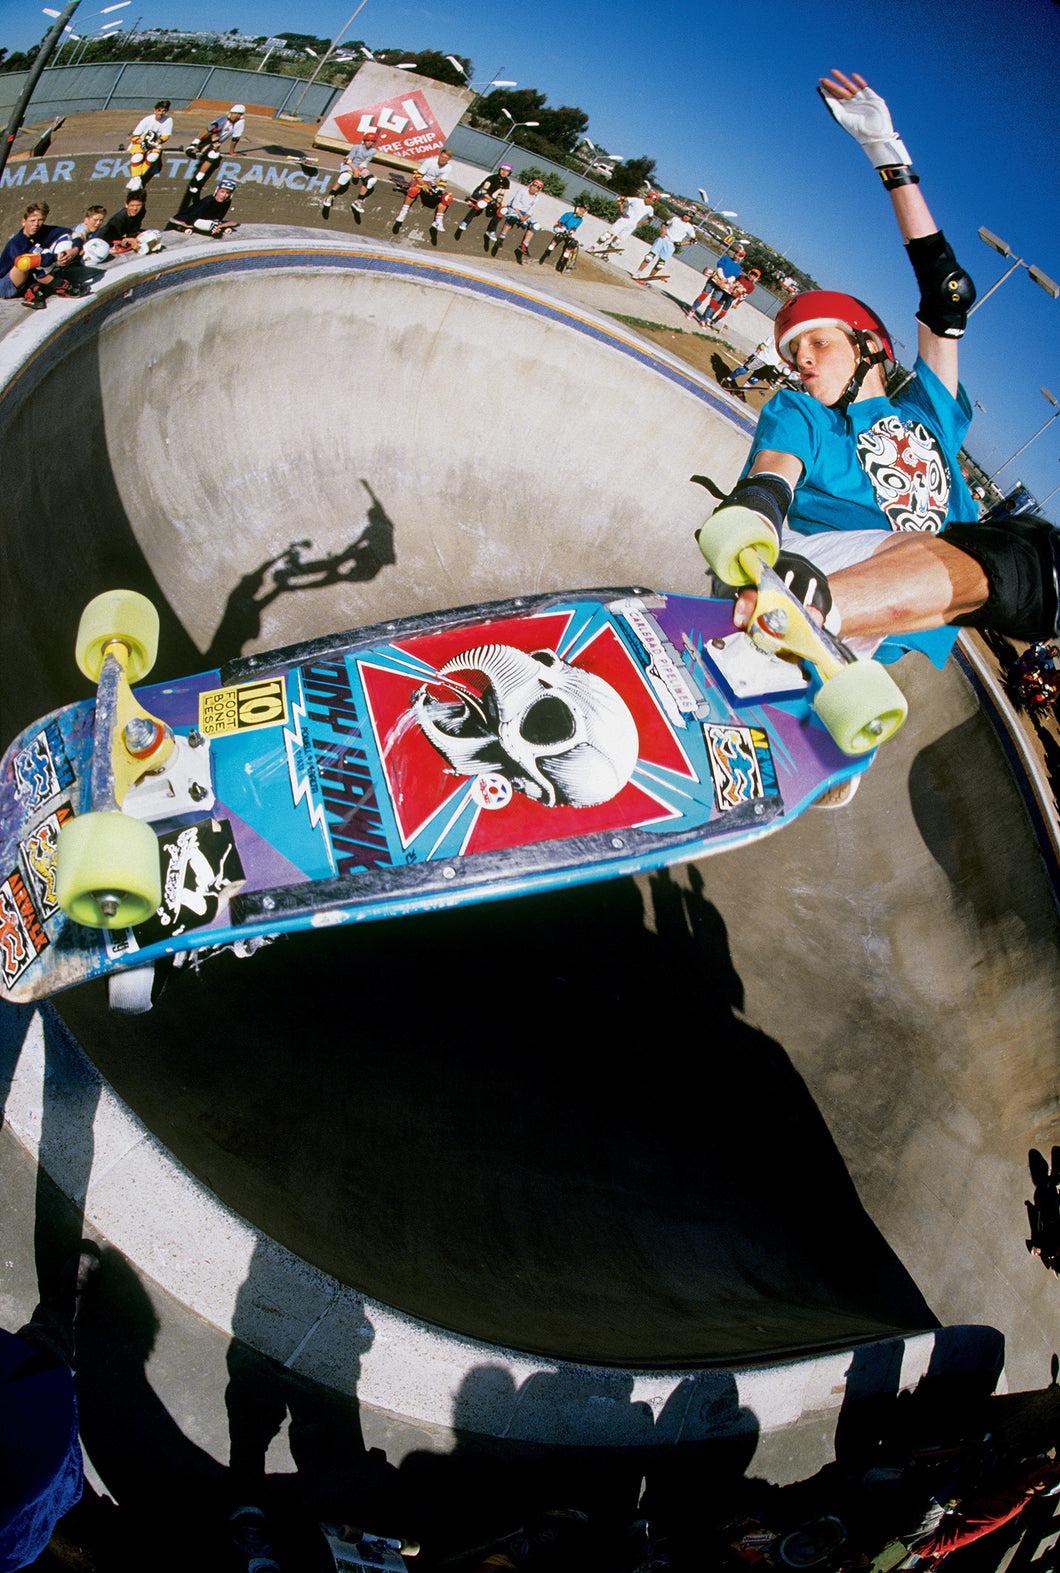 Tony Hawk Crossbone Lien Air 1986 Del Mar Skate Ranch Photograph